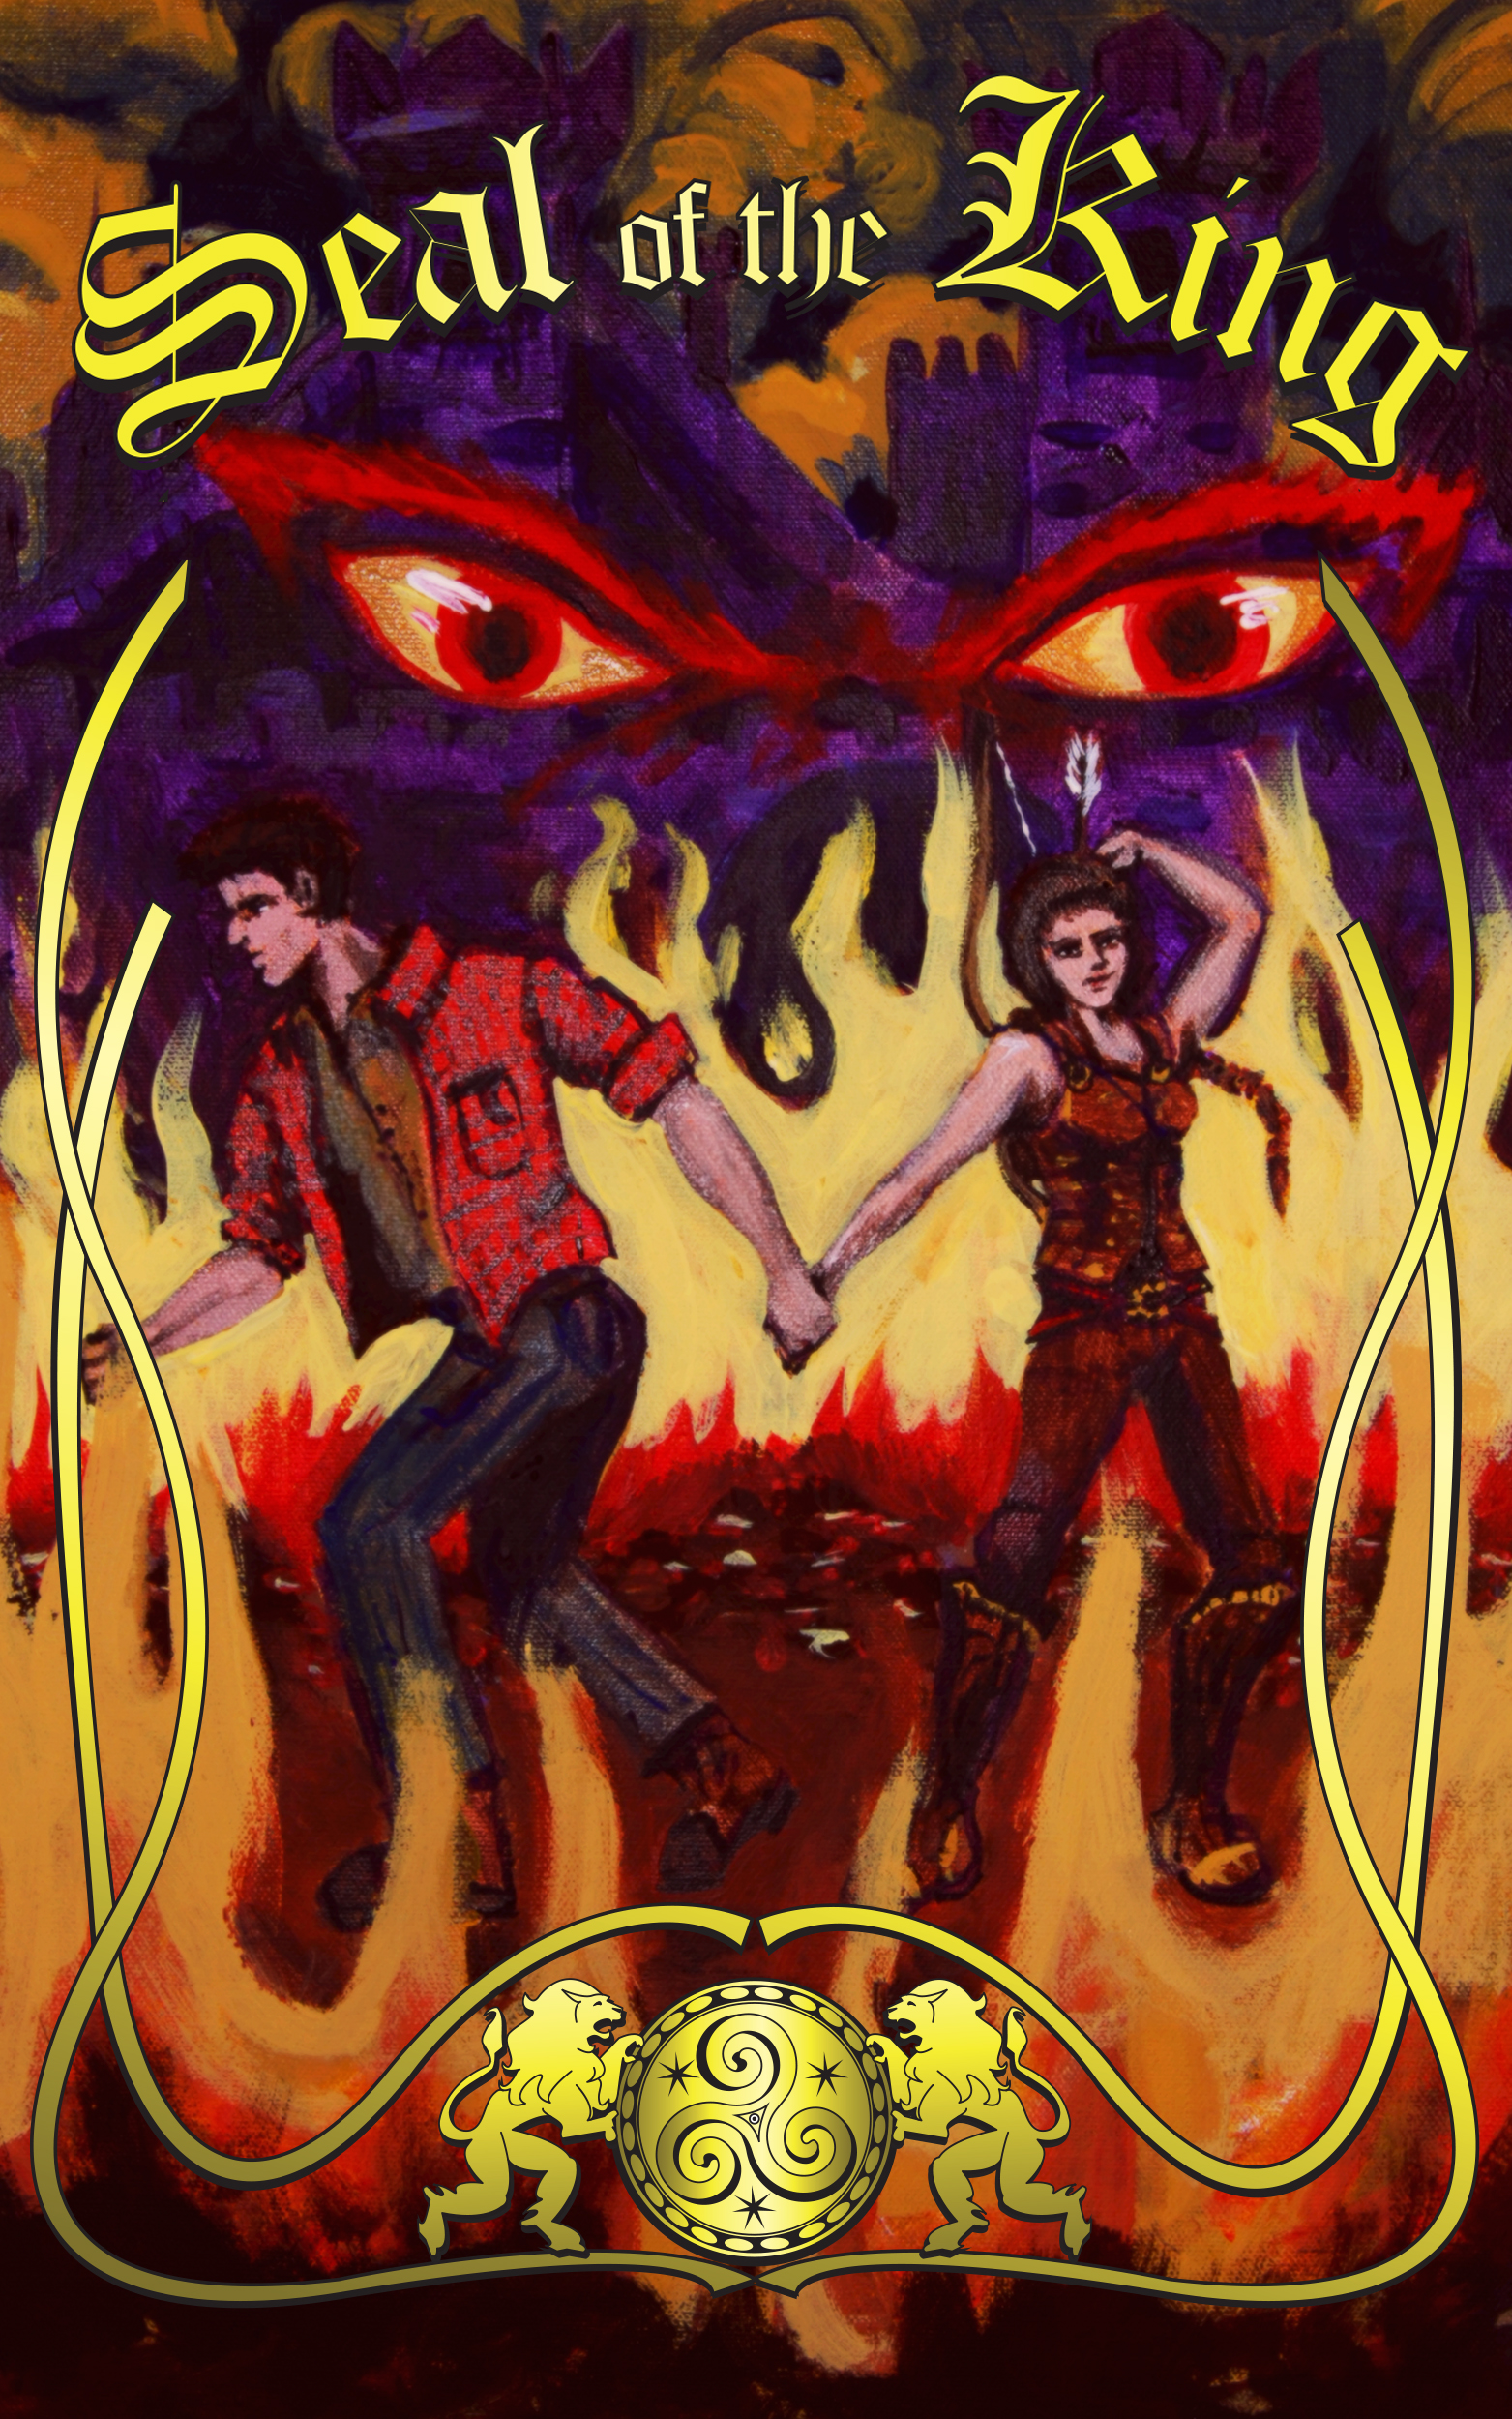 4.0 out of 5 stars Christian fantasy with lots of romance, August 7, 2014